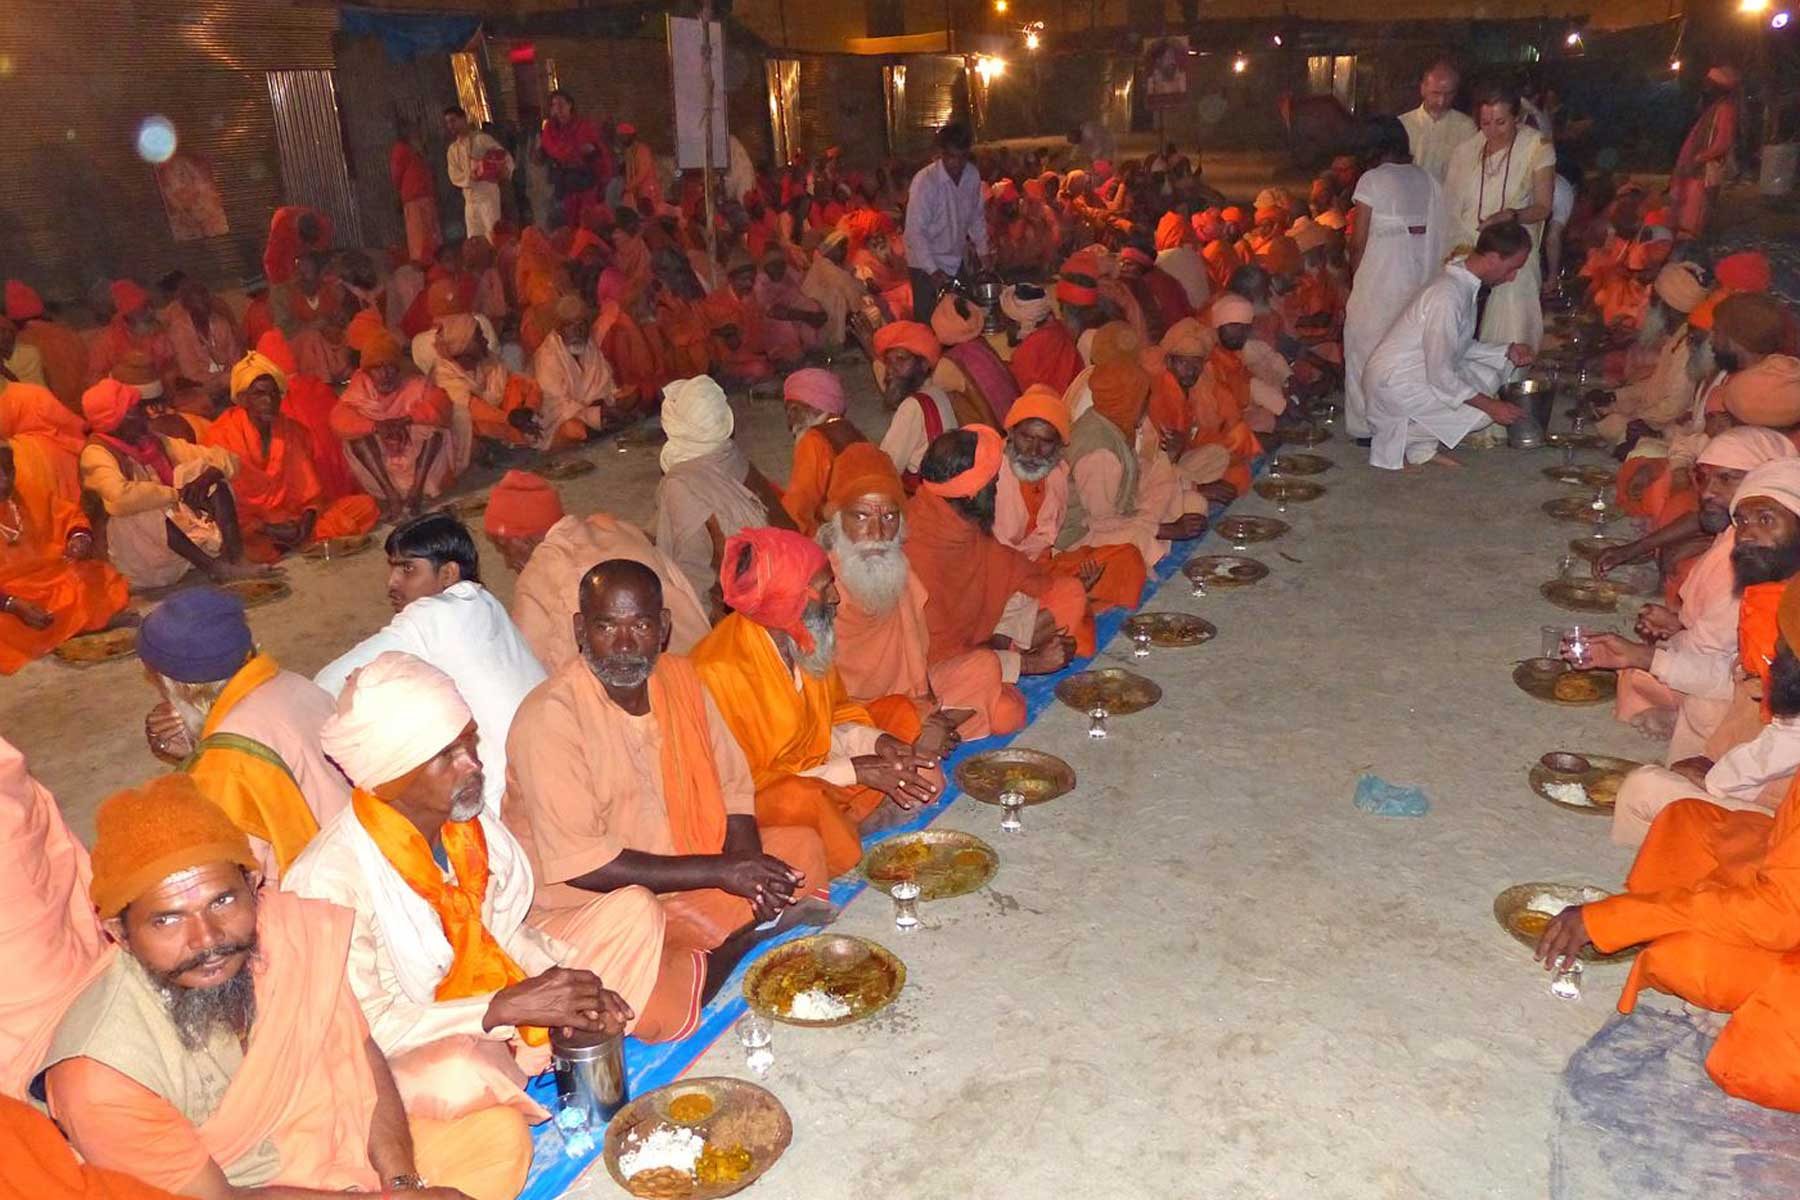 priests-and-sadhus-eating-dinner-during-kumbh-mela